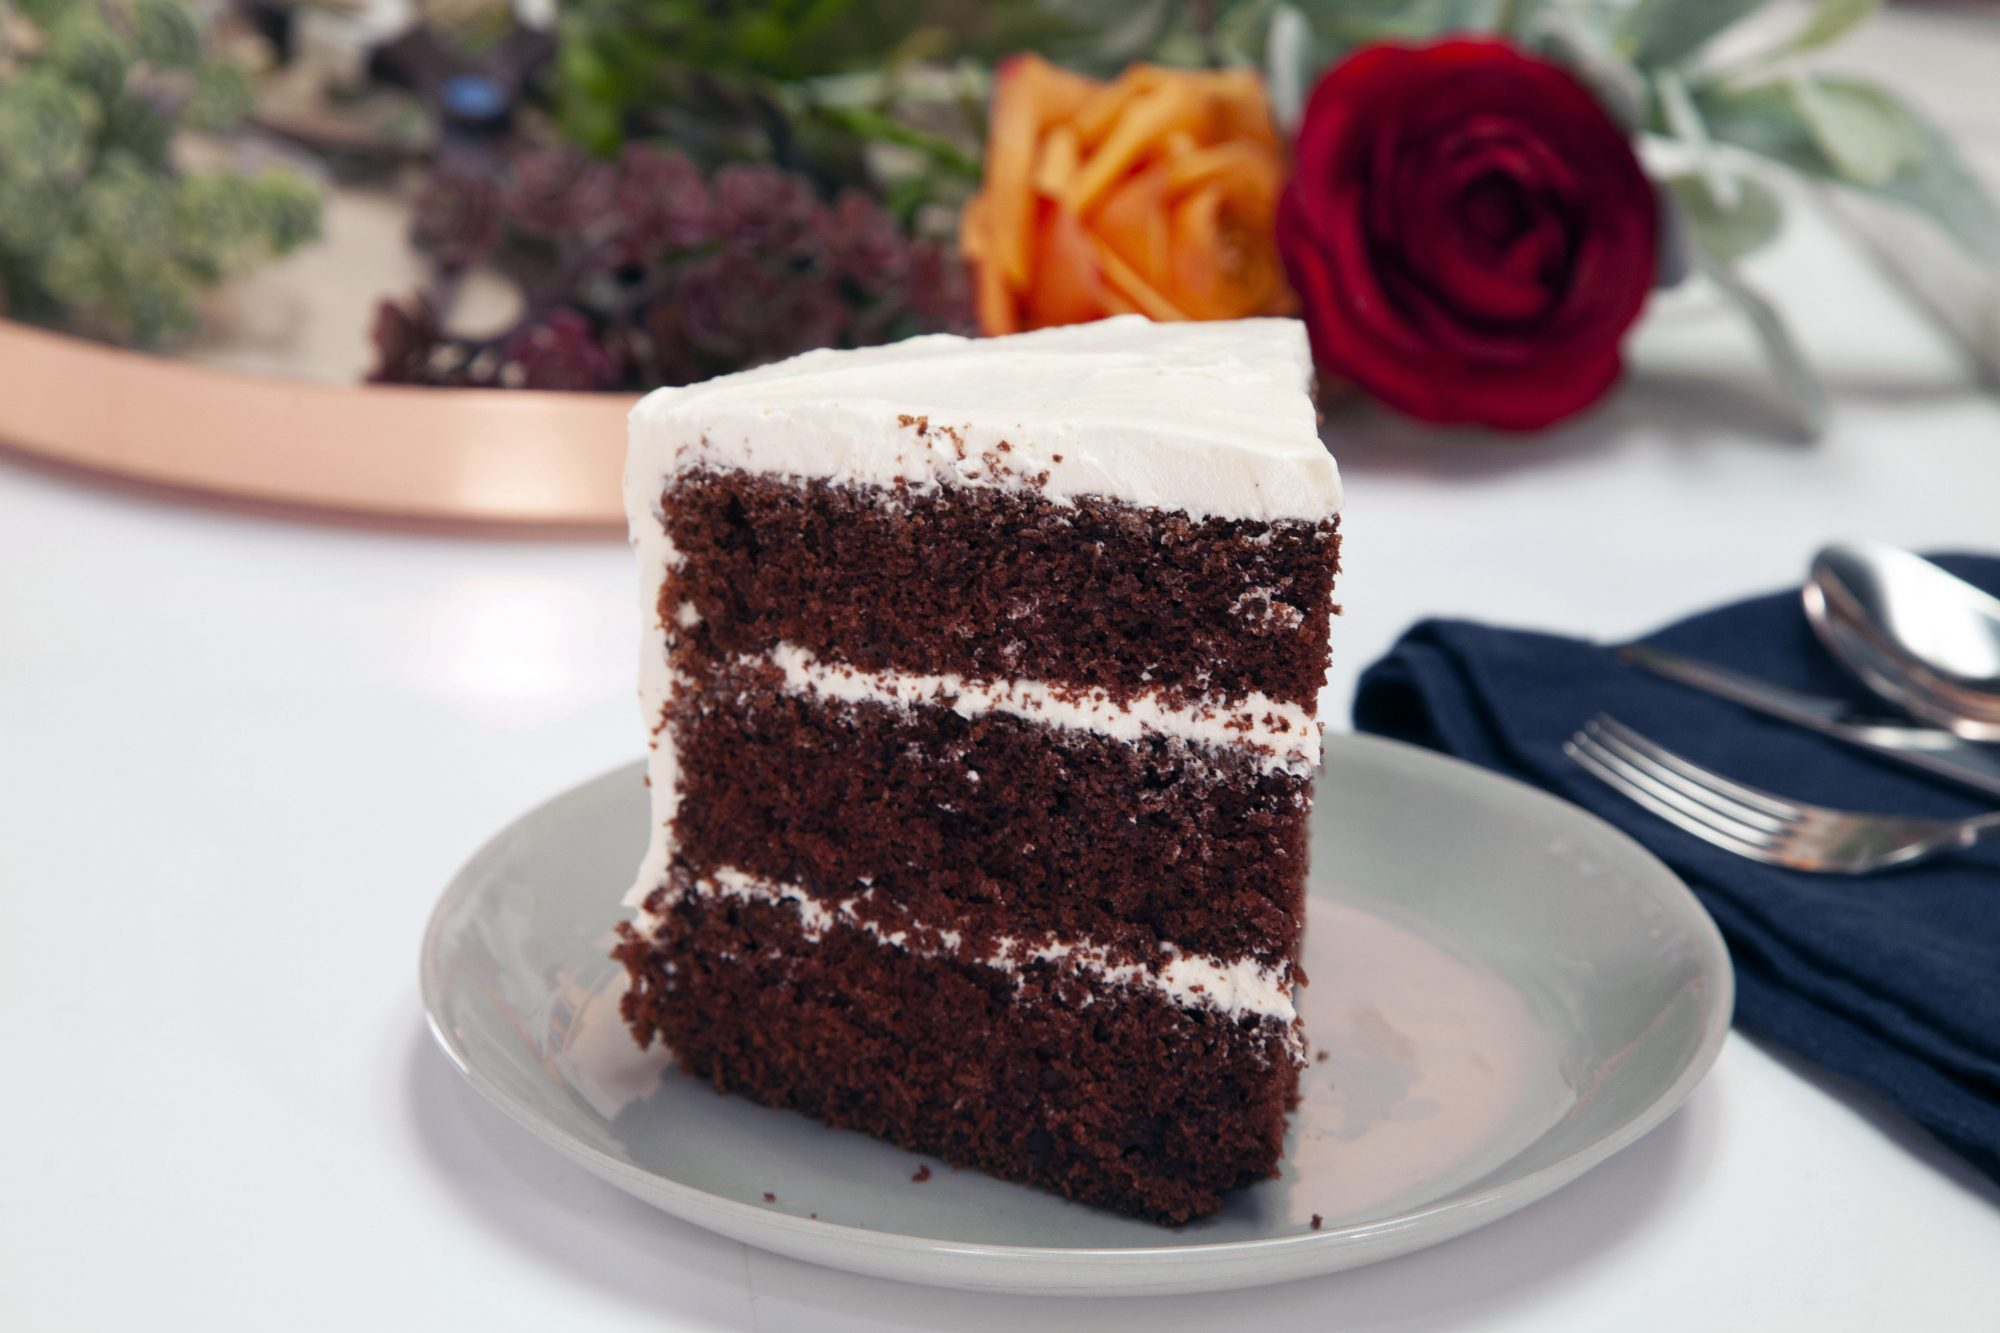 Though it's a Christmas-appropriate shade of red, The Real Red Velvet Cake requires no food coloring thanks to non-alkalized cocoa powder. An old-fashioned white ermine frosting tops it off.